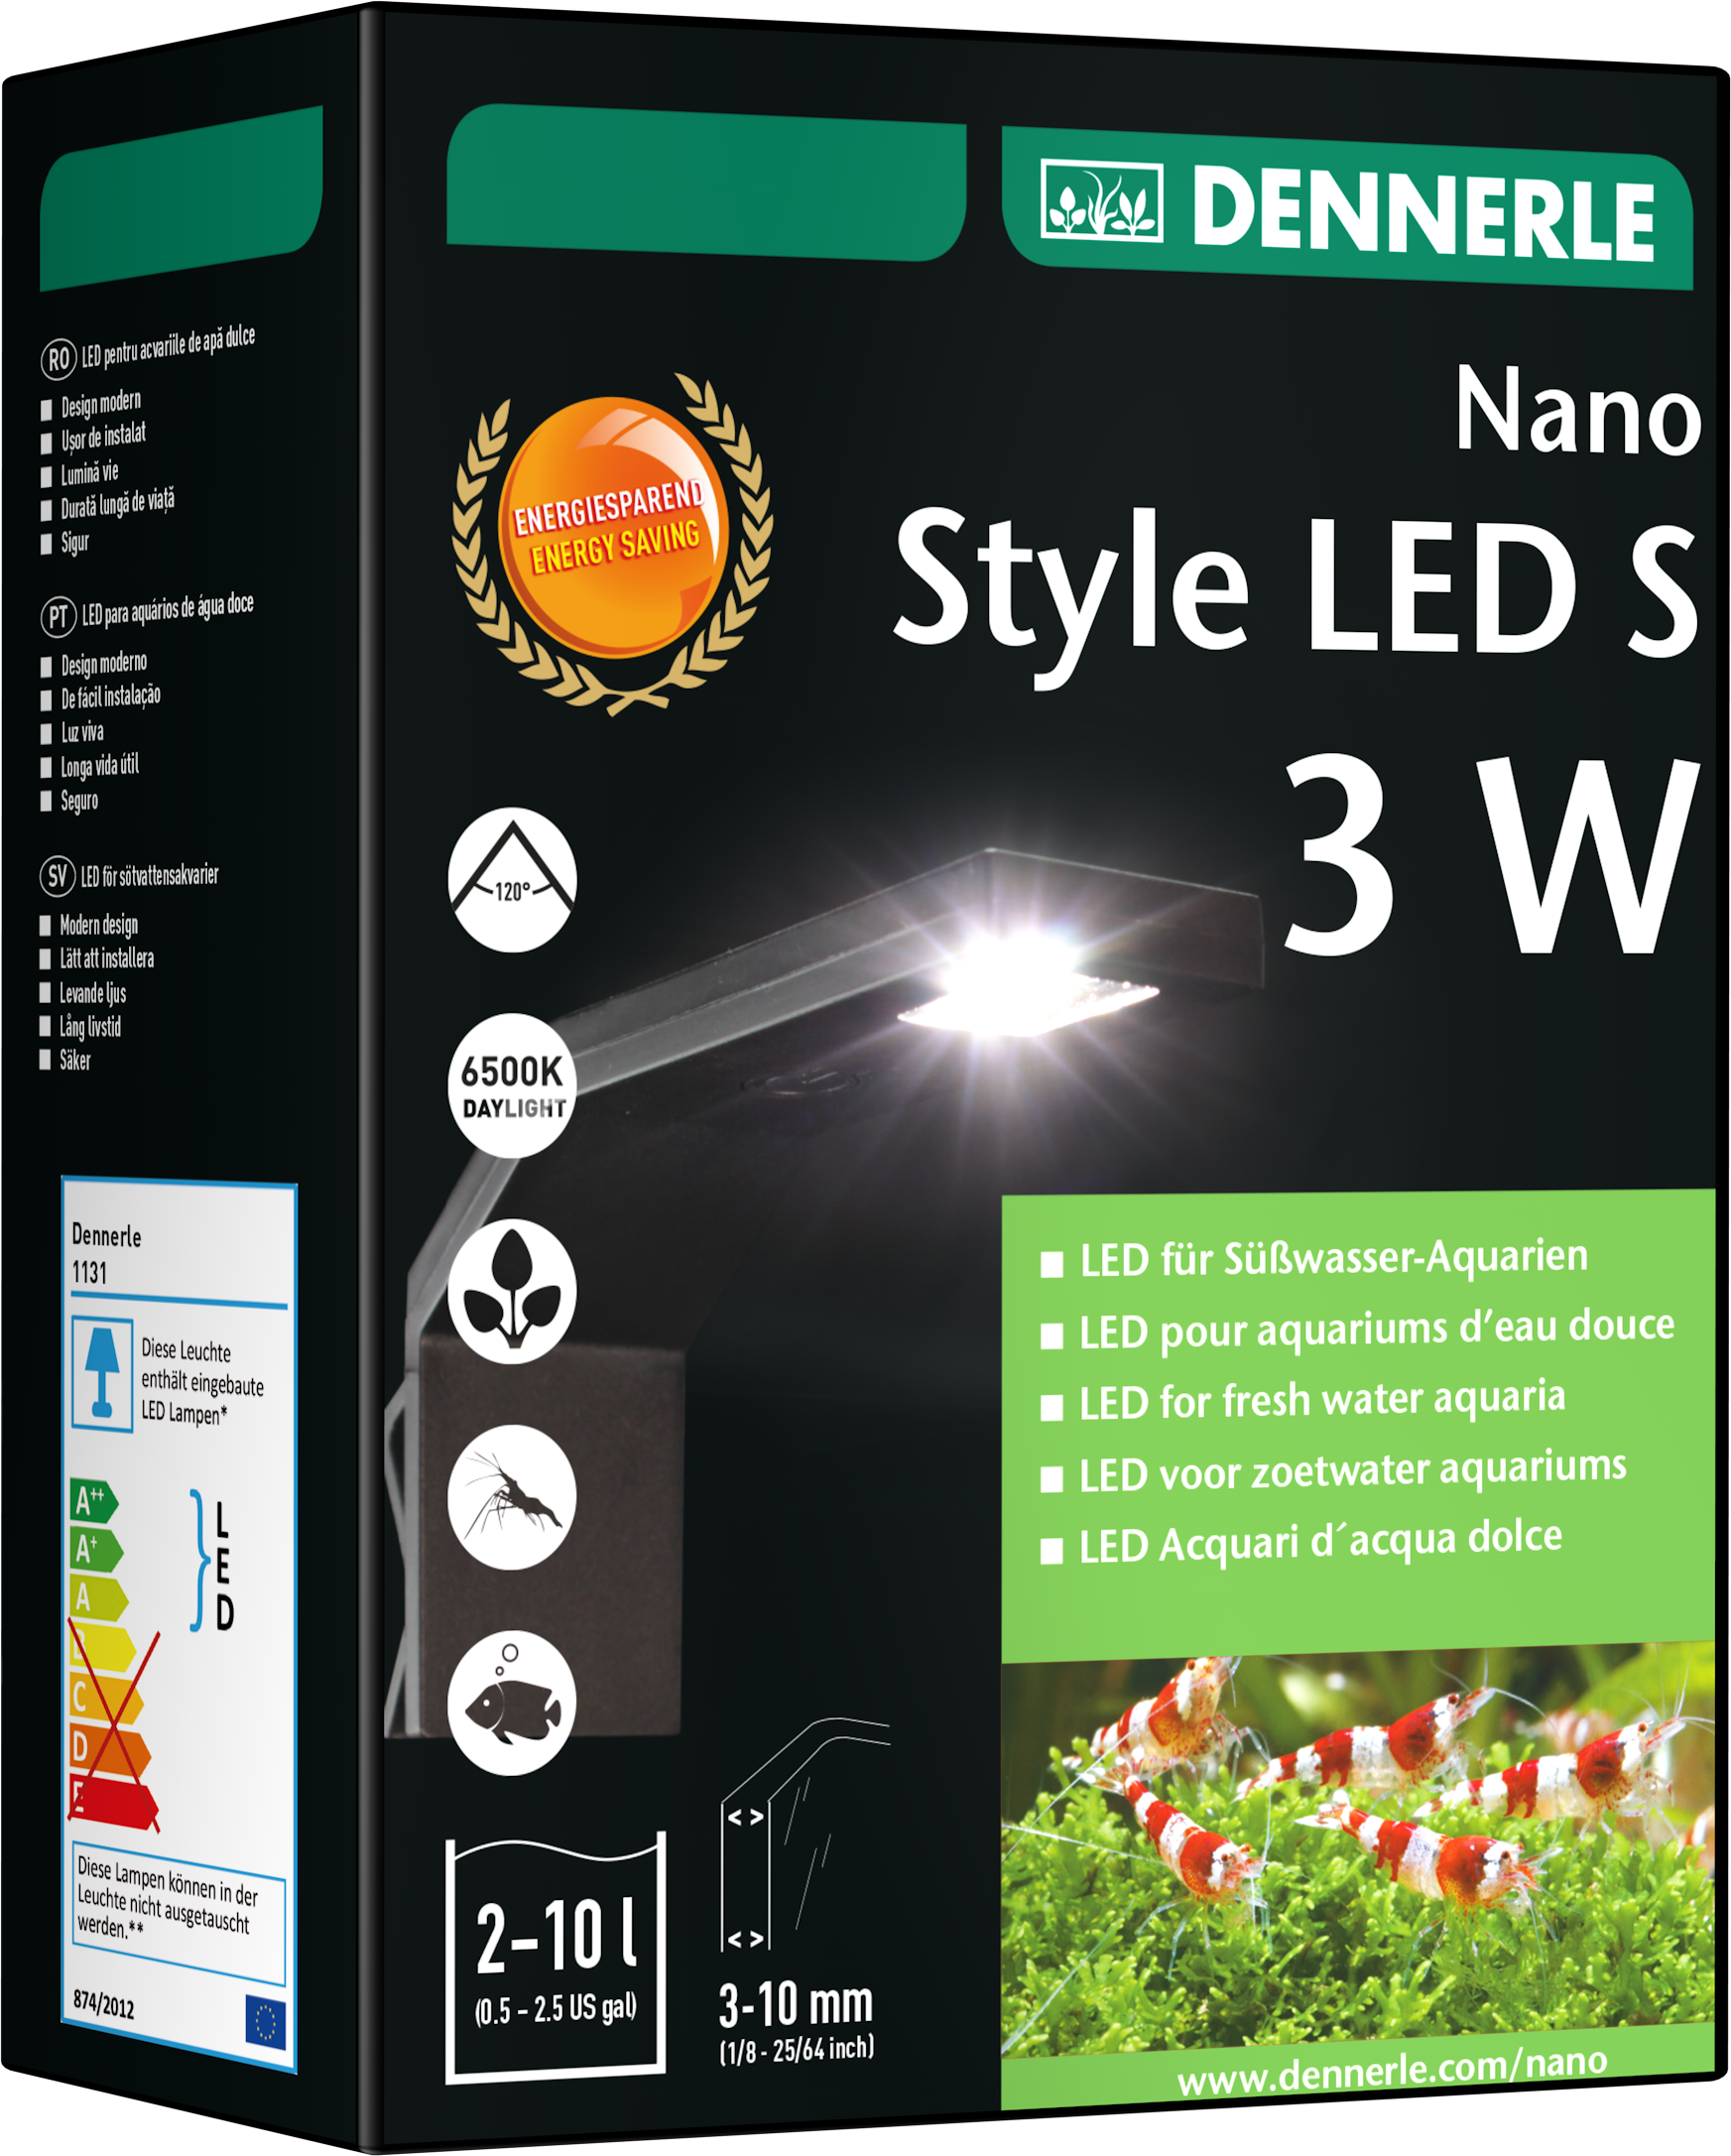 nano style led dennerle On eclairage exterieur 12v